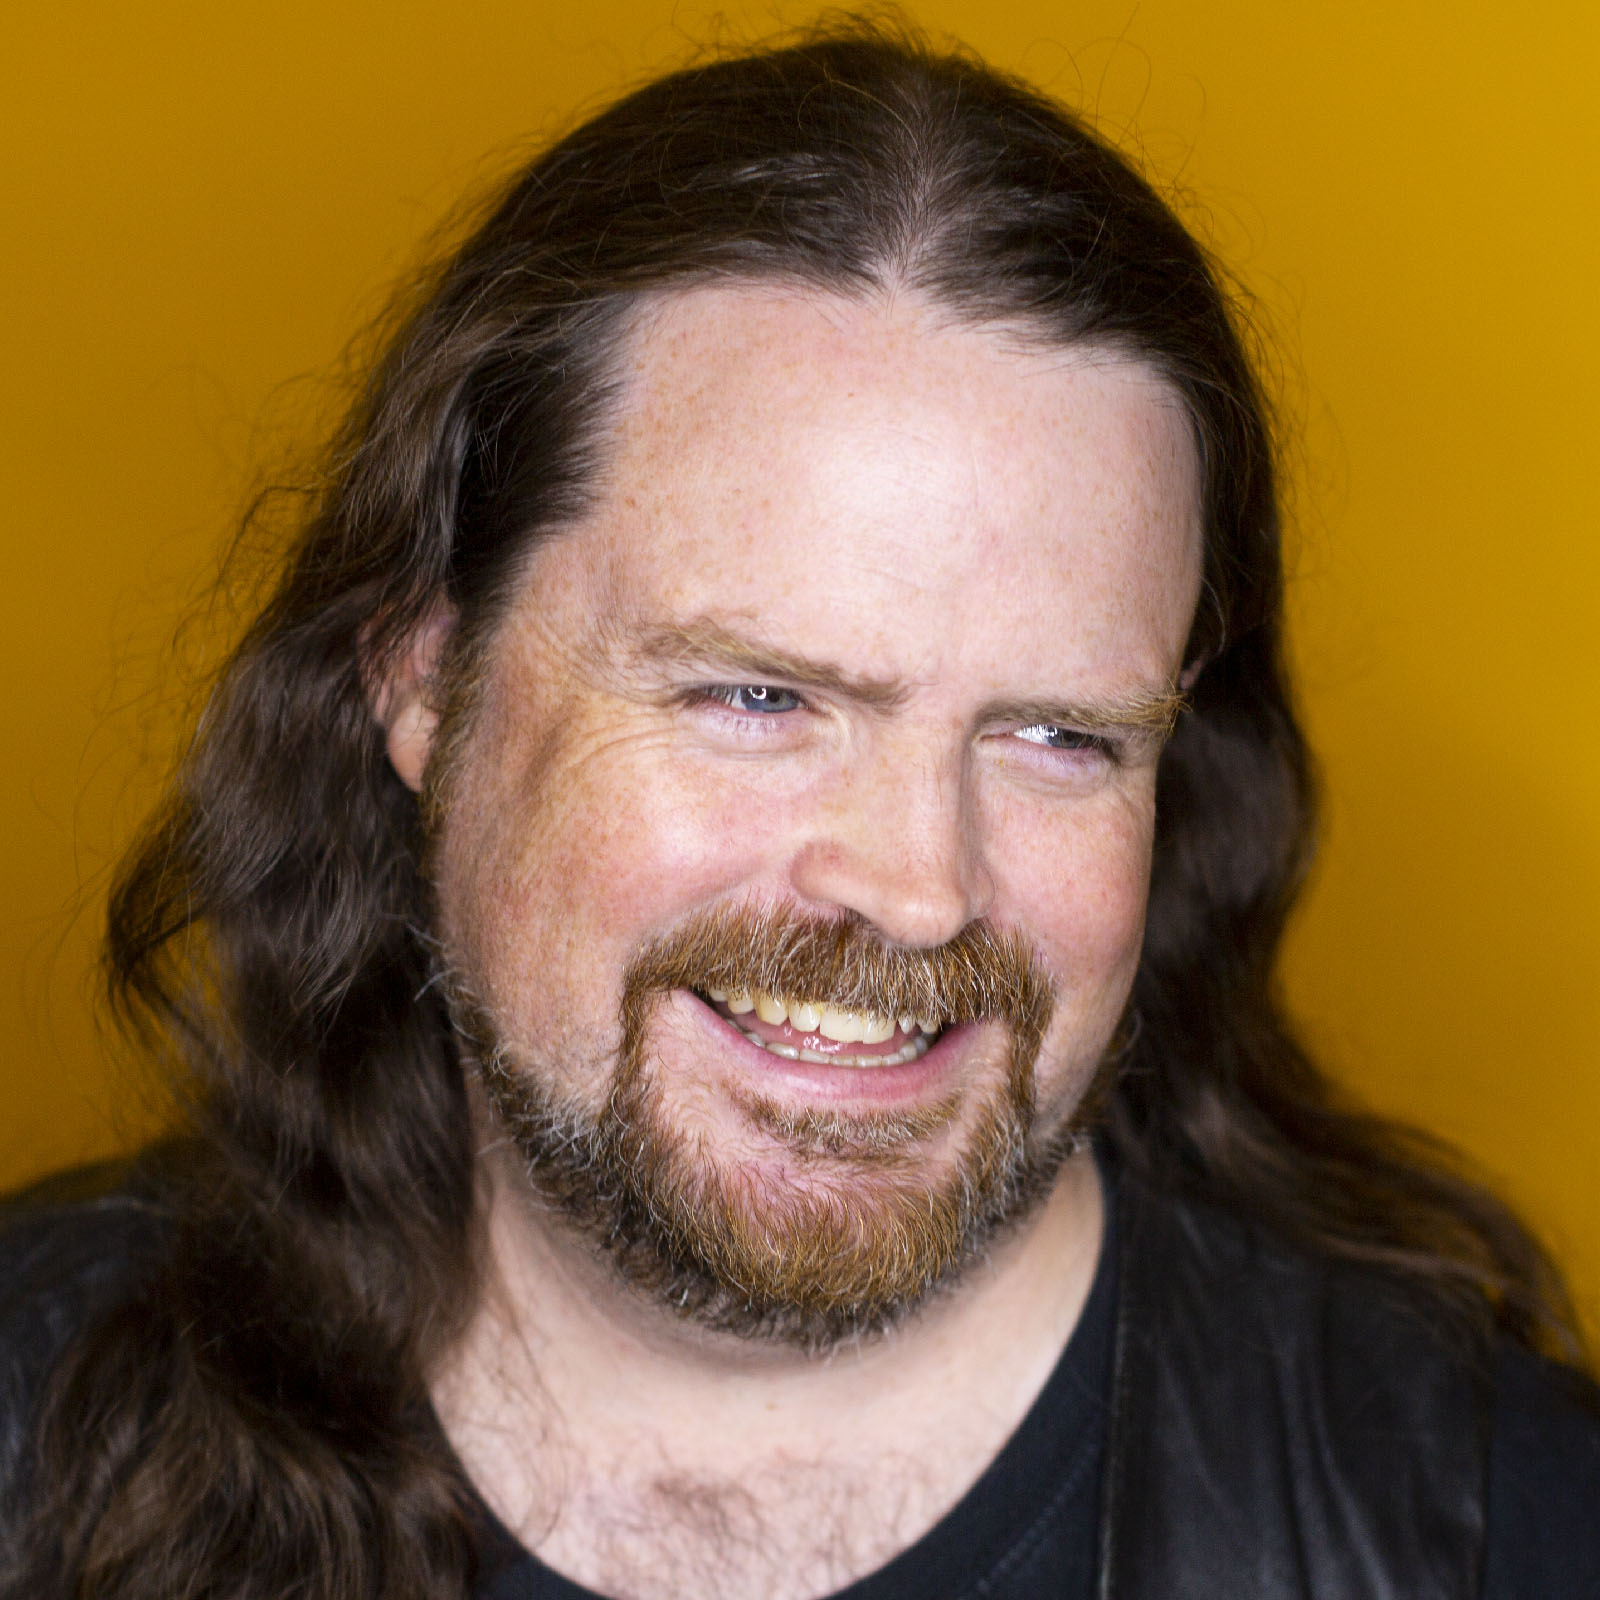 Studio headshot of Dylan Beattie in front of a yellow background.